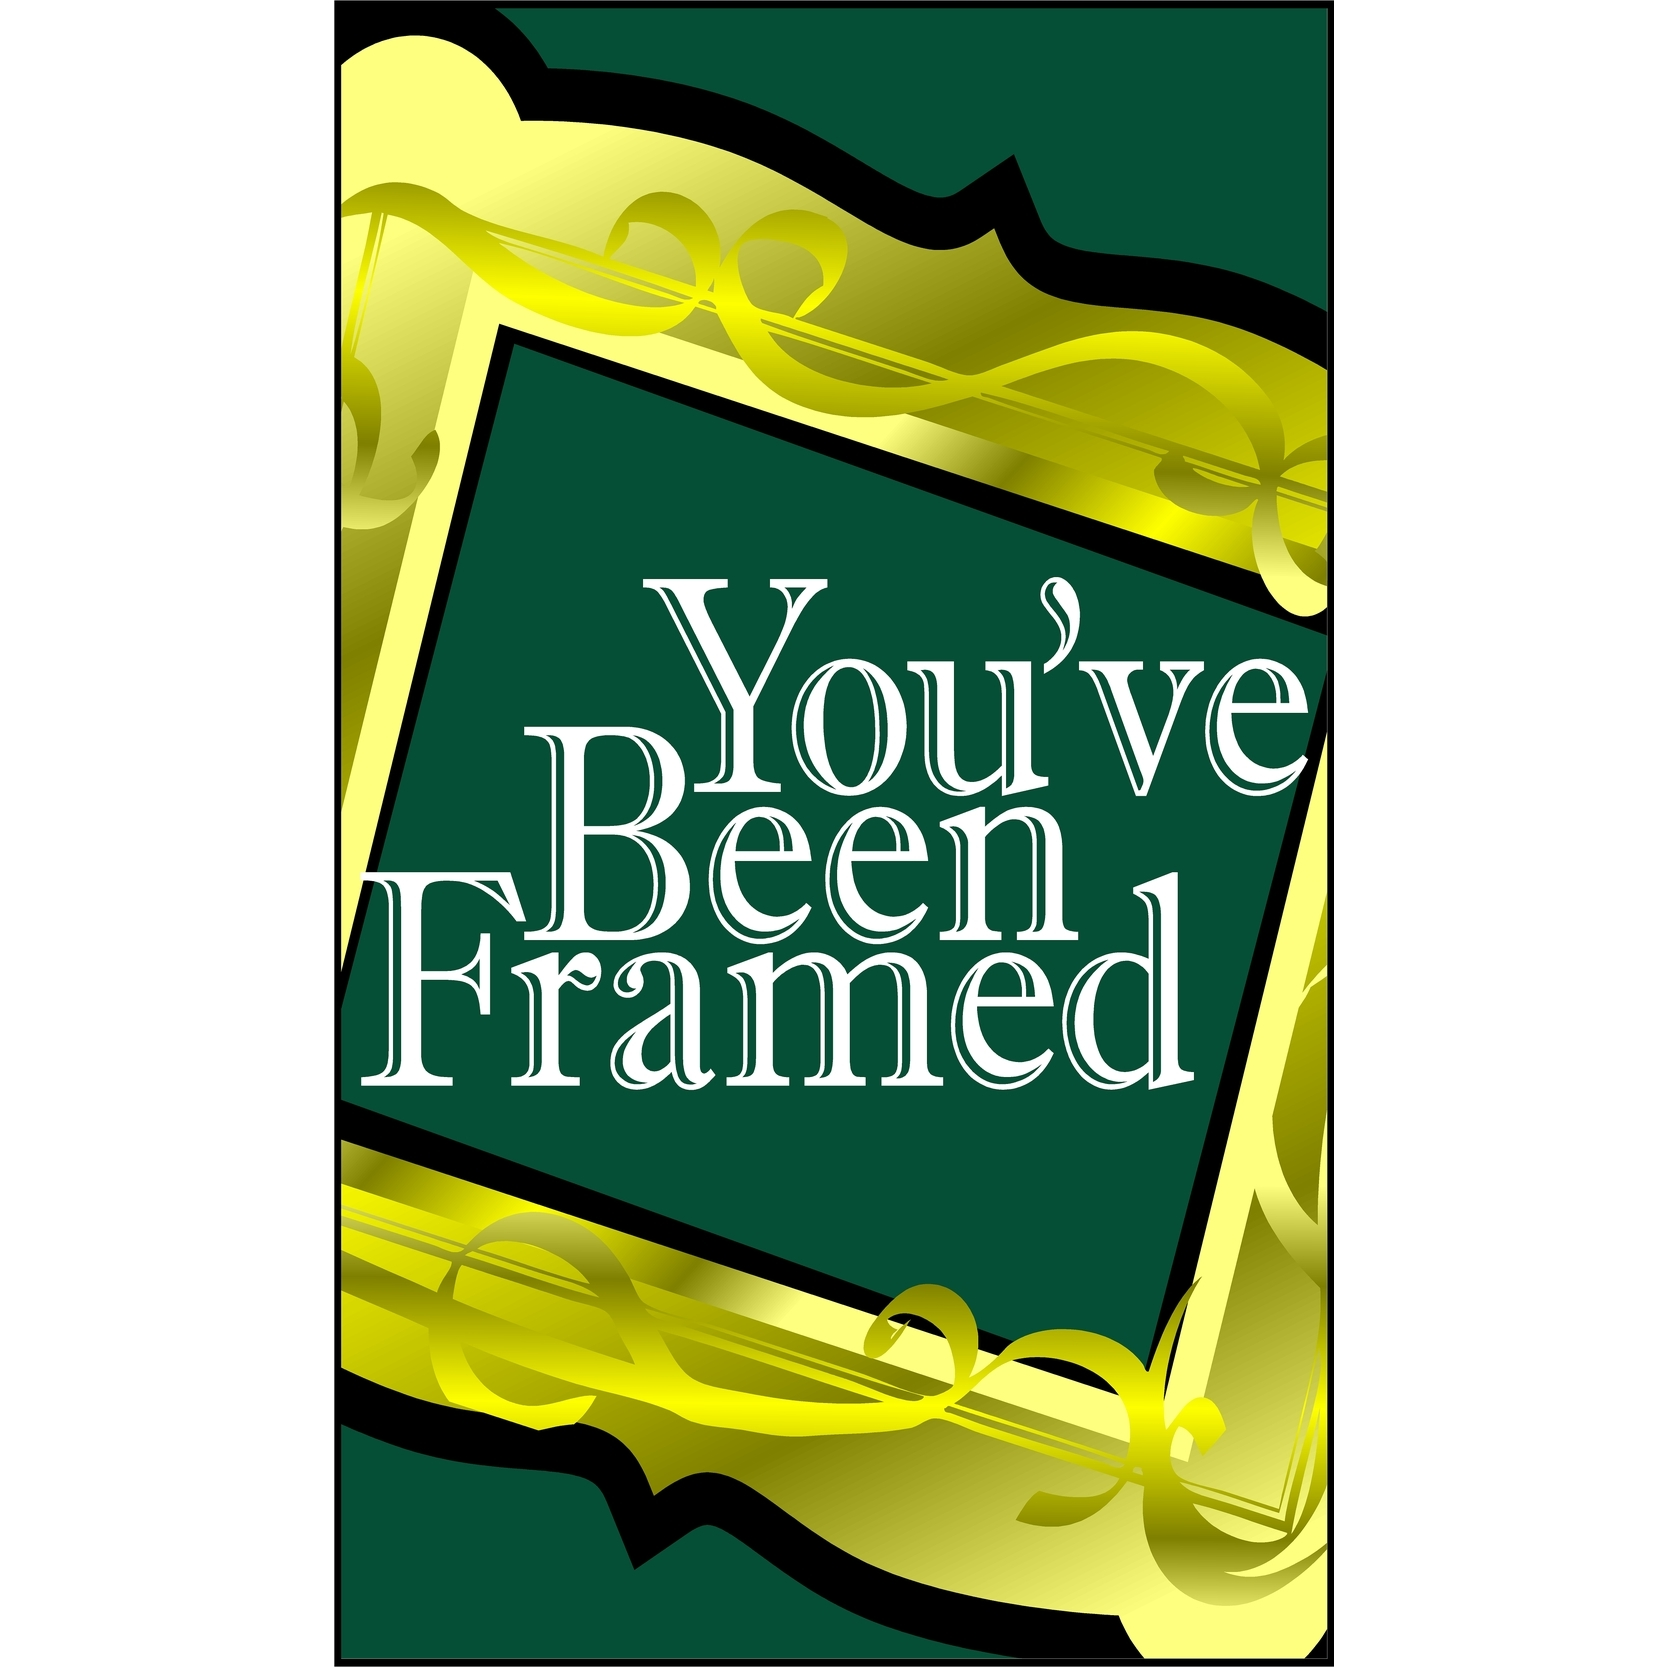 image of the You've Been Framed